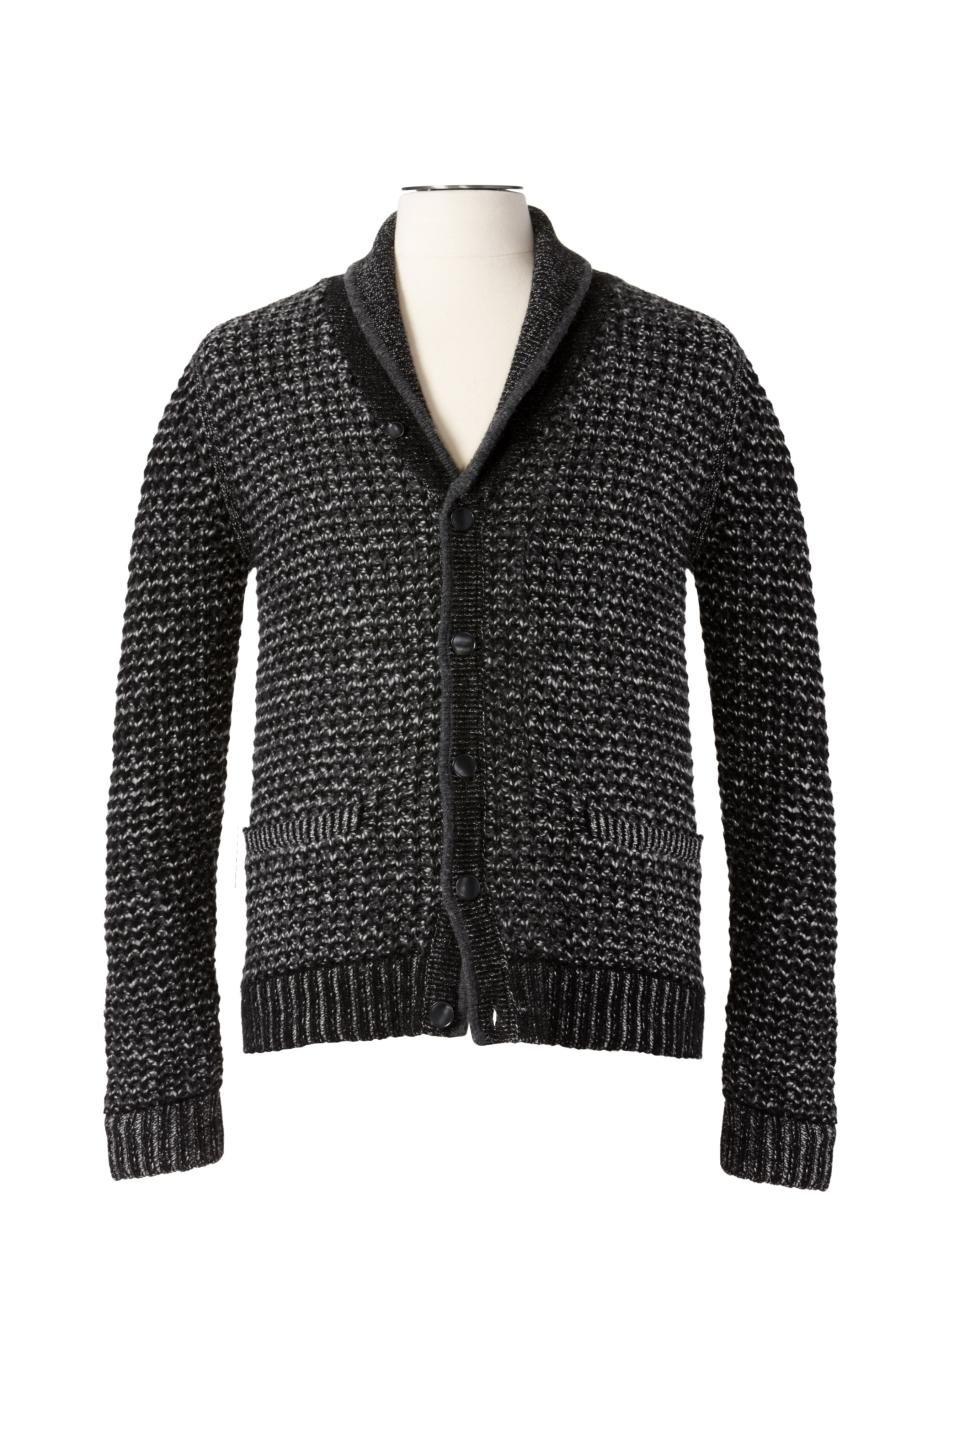 <b>rag & bone for Target + Neiman Marcus Holiday Collection Boy's and Men's Sweater </b><br><br> Men's Sweater Price: $69.99, Size: S – XL <br><br> Boy's Sweater Price: $49.99, Size: S – XL <br><br>